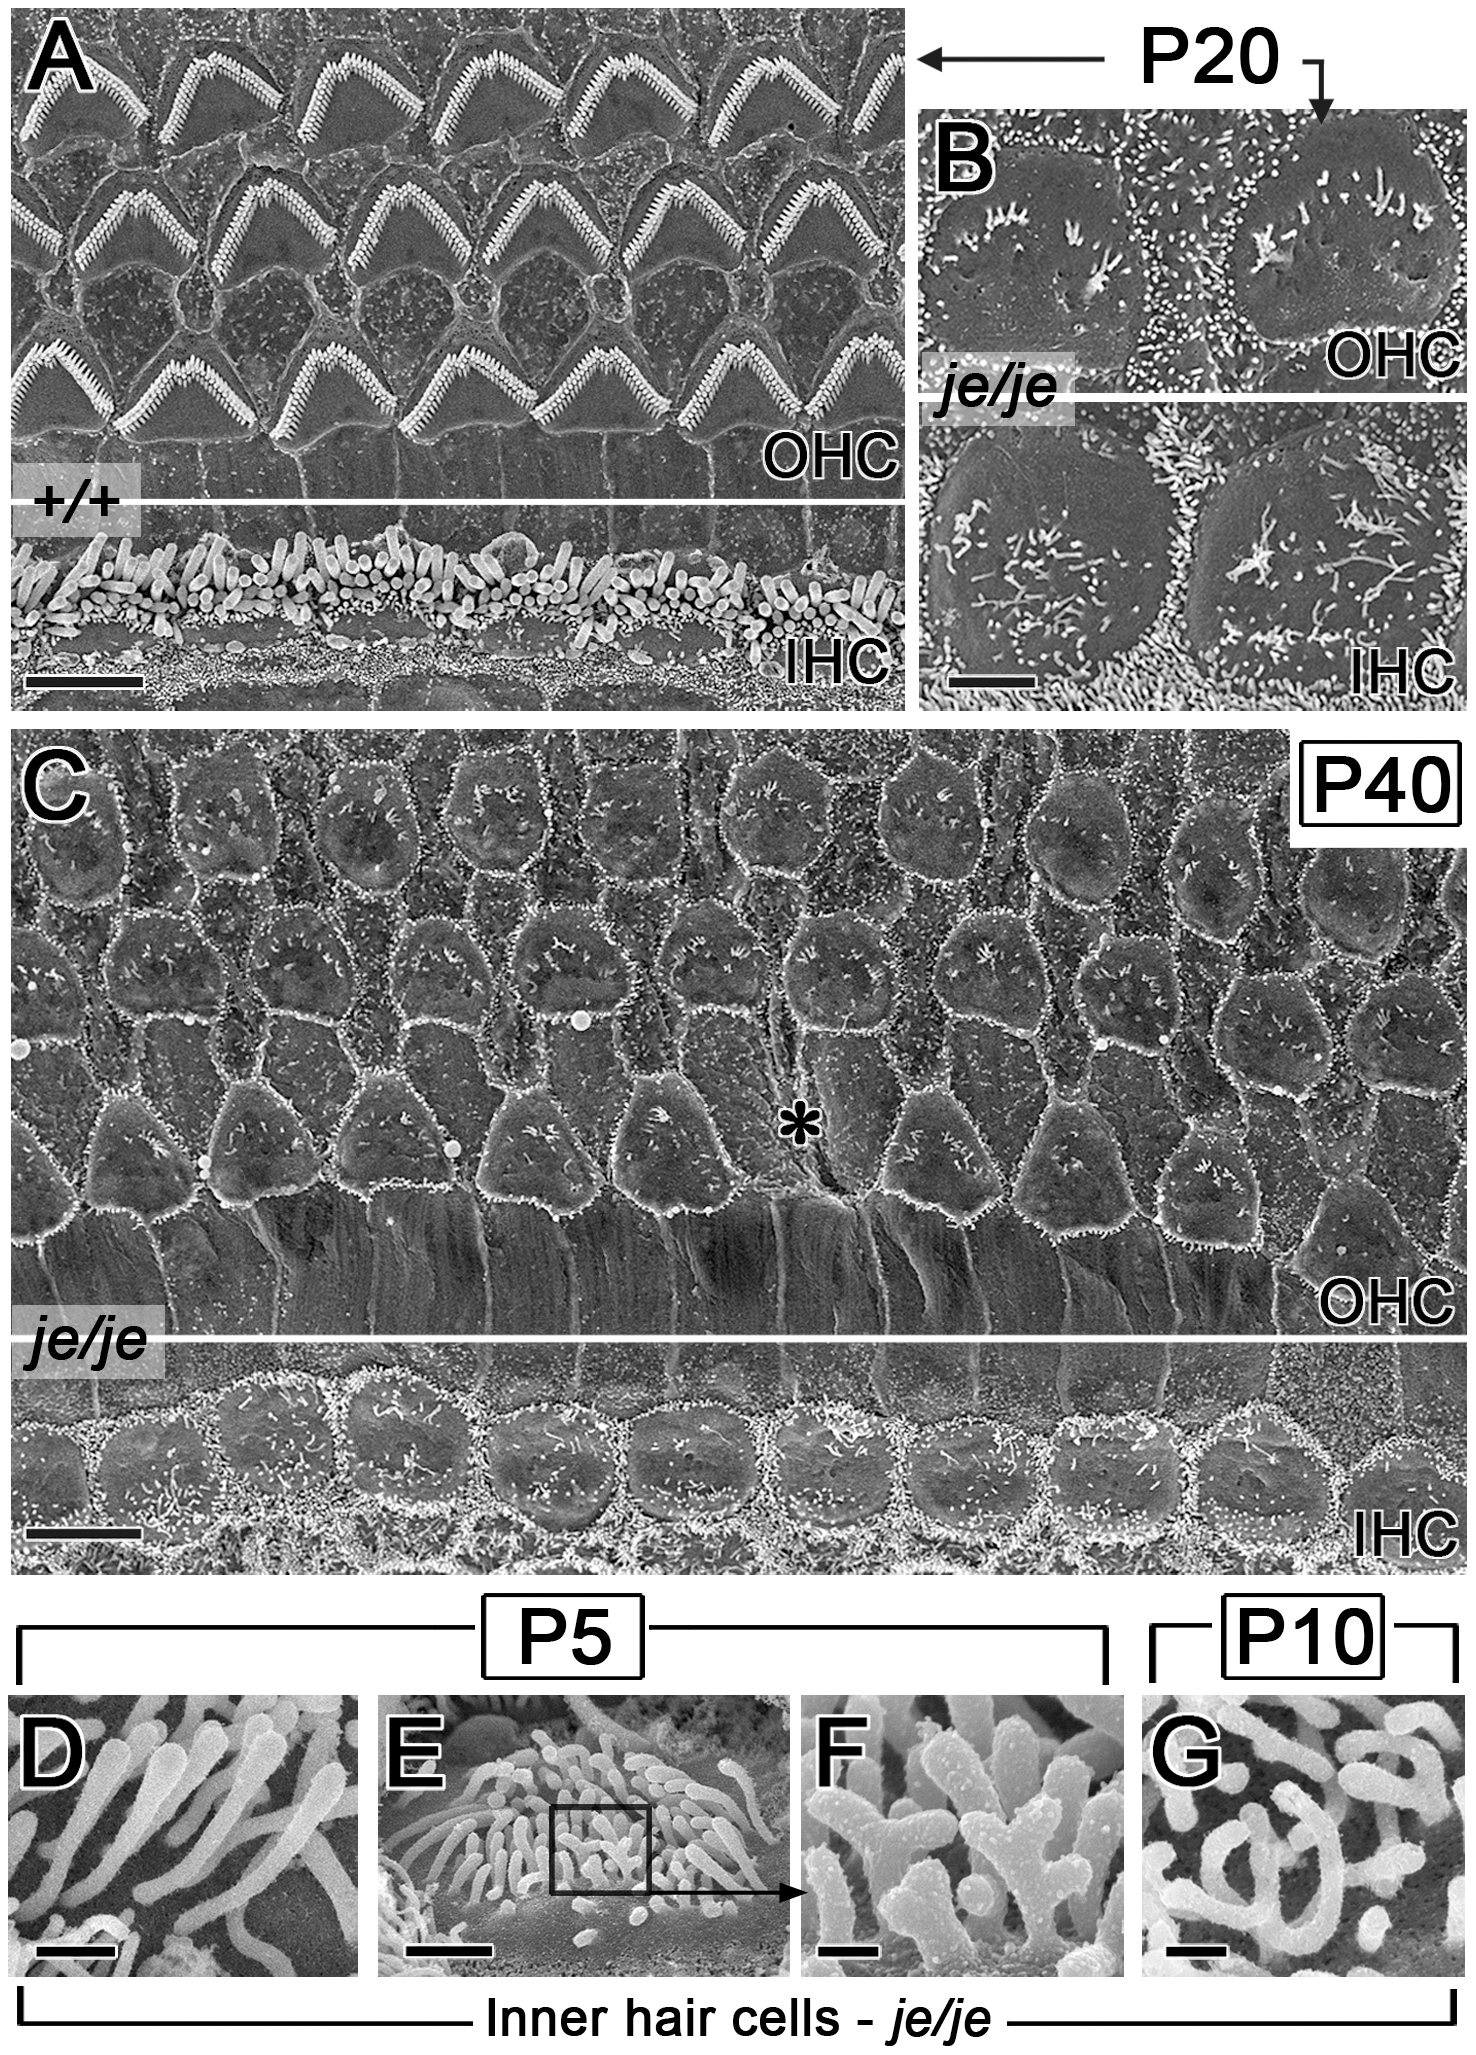 Advanced stereociliary degeneration on cochlear hair cells and peculiar stereociliary defects on inner hair cells.